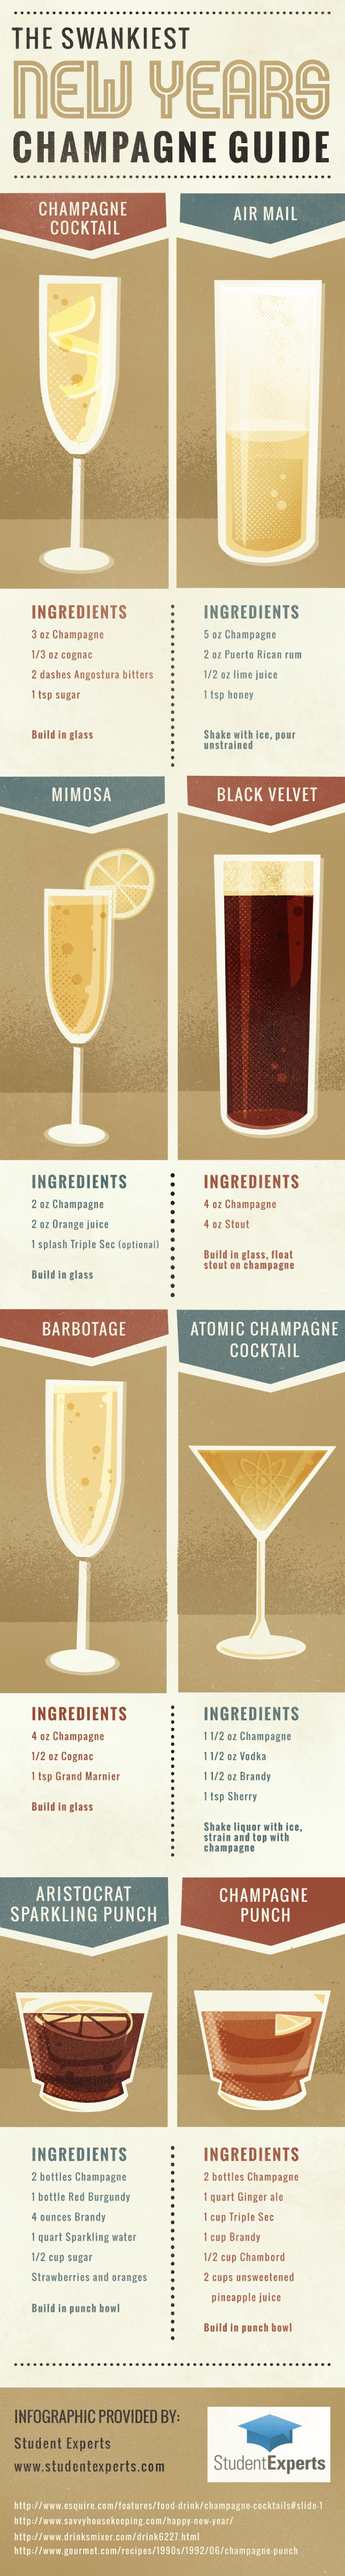 the-swankiest-new-years-champagne-guide_52b4b289acd051